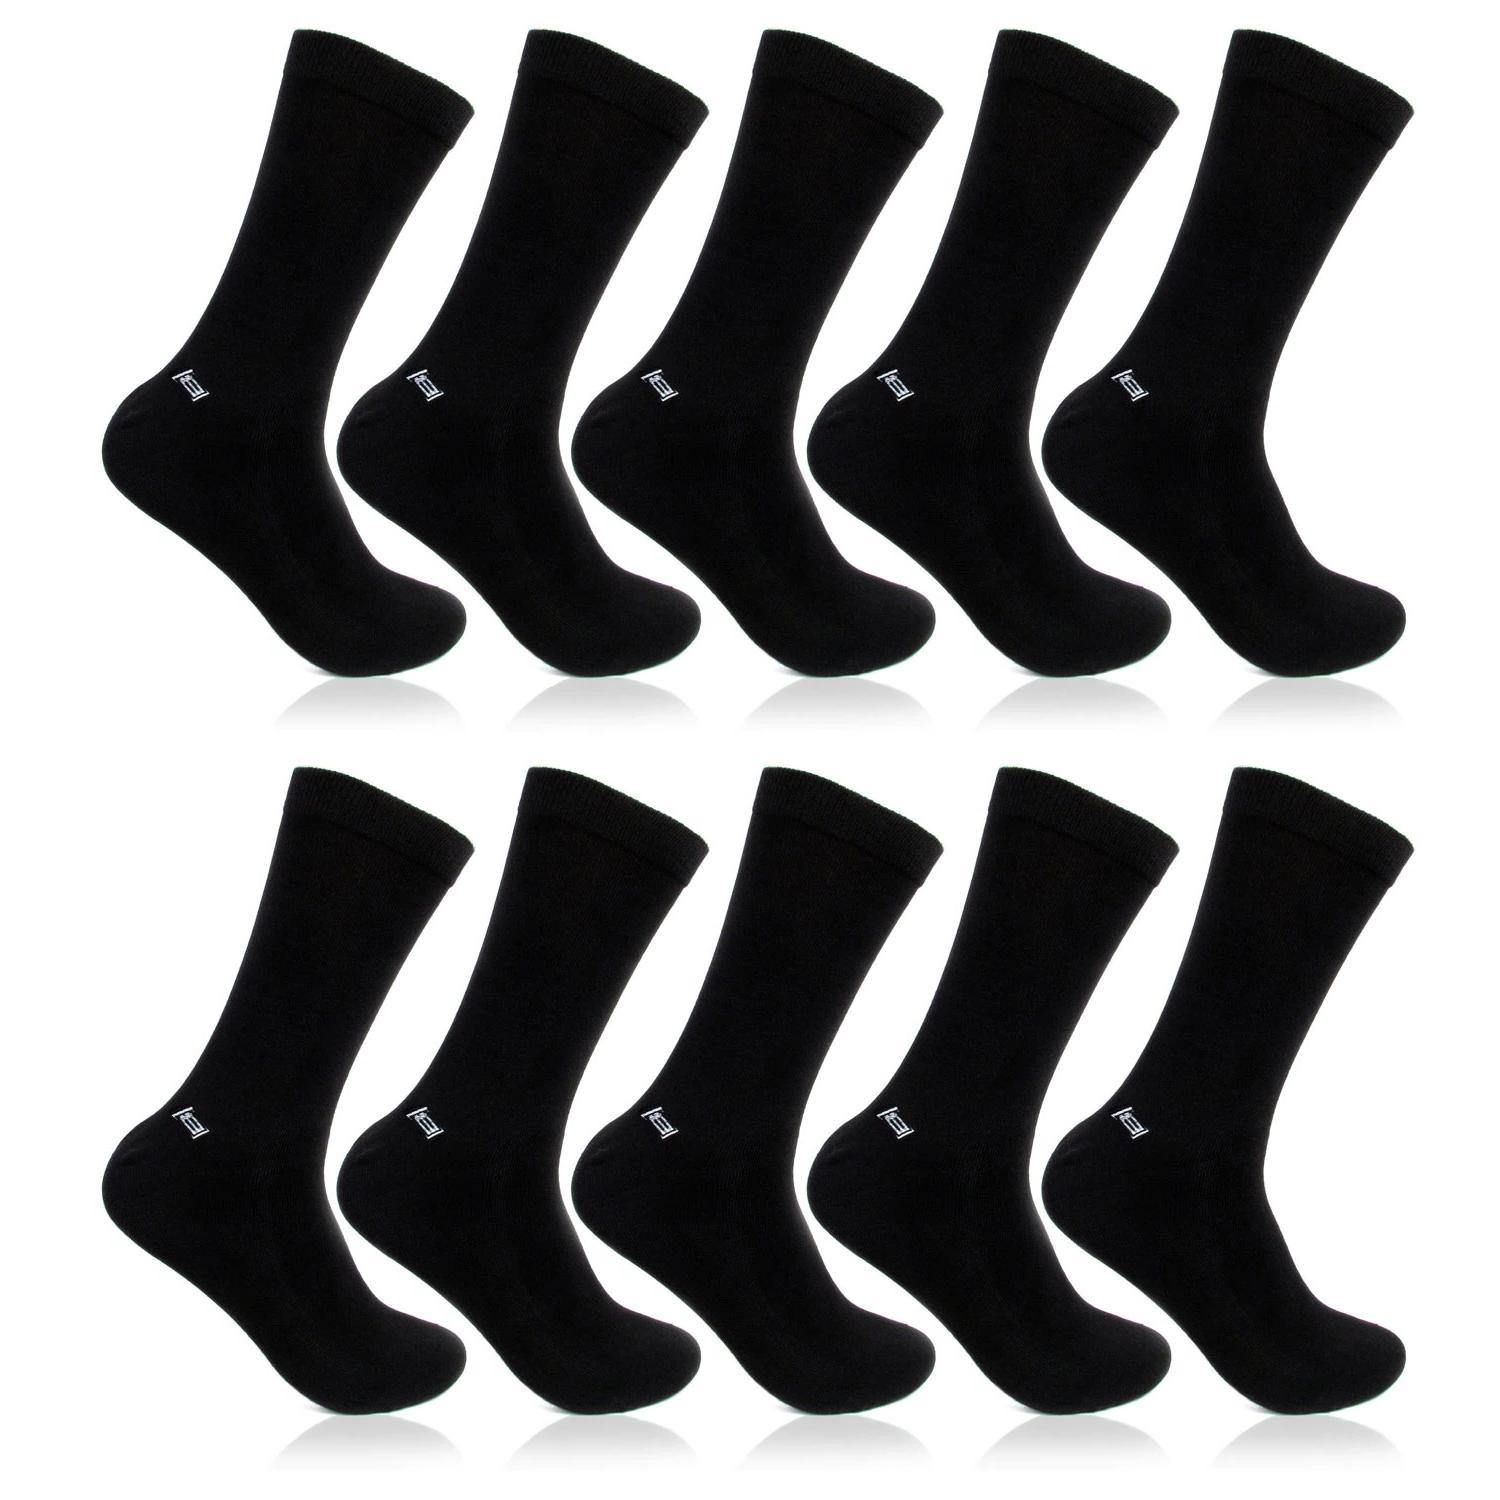 Men's Cotton Odour Free Multicoloured Plain Full Length Socks- Pack of 10